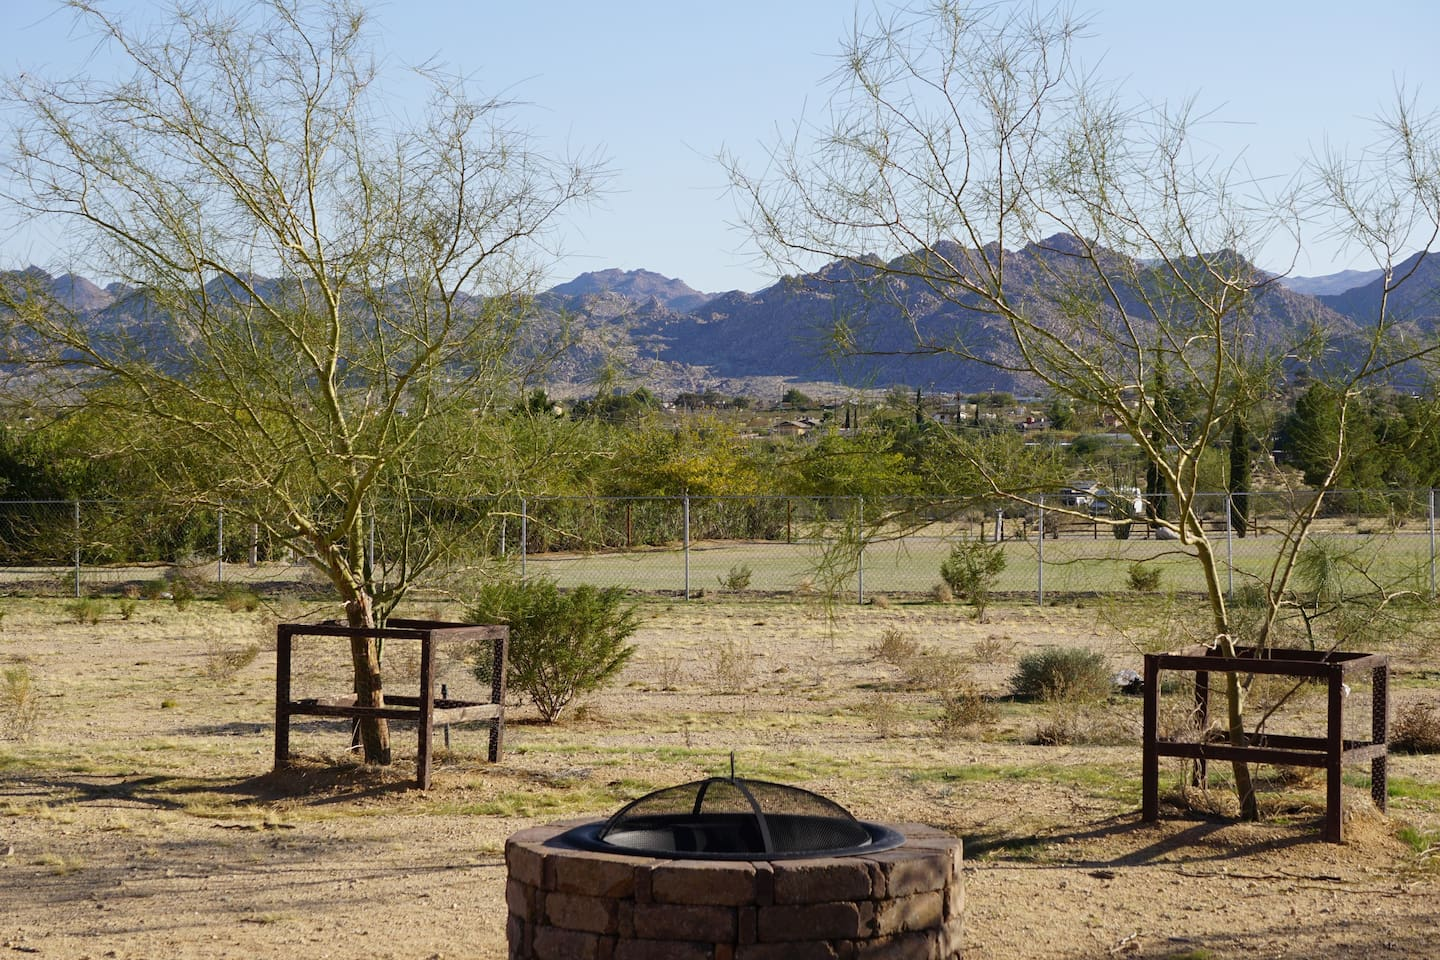 The panoramic view from our backyard of Joshua Tree National Park.